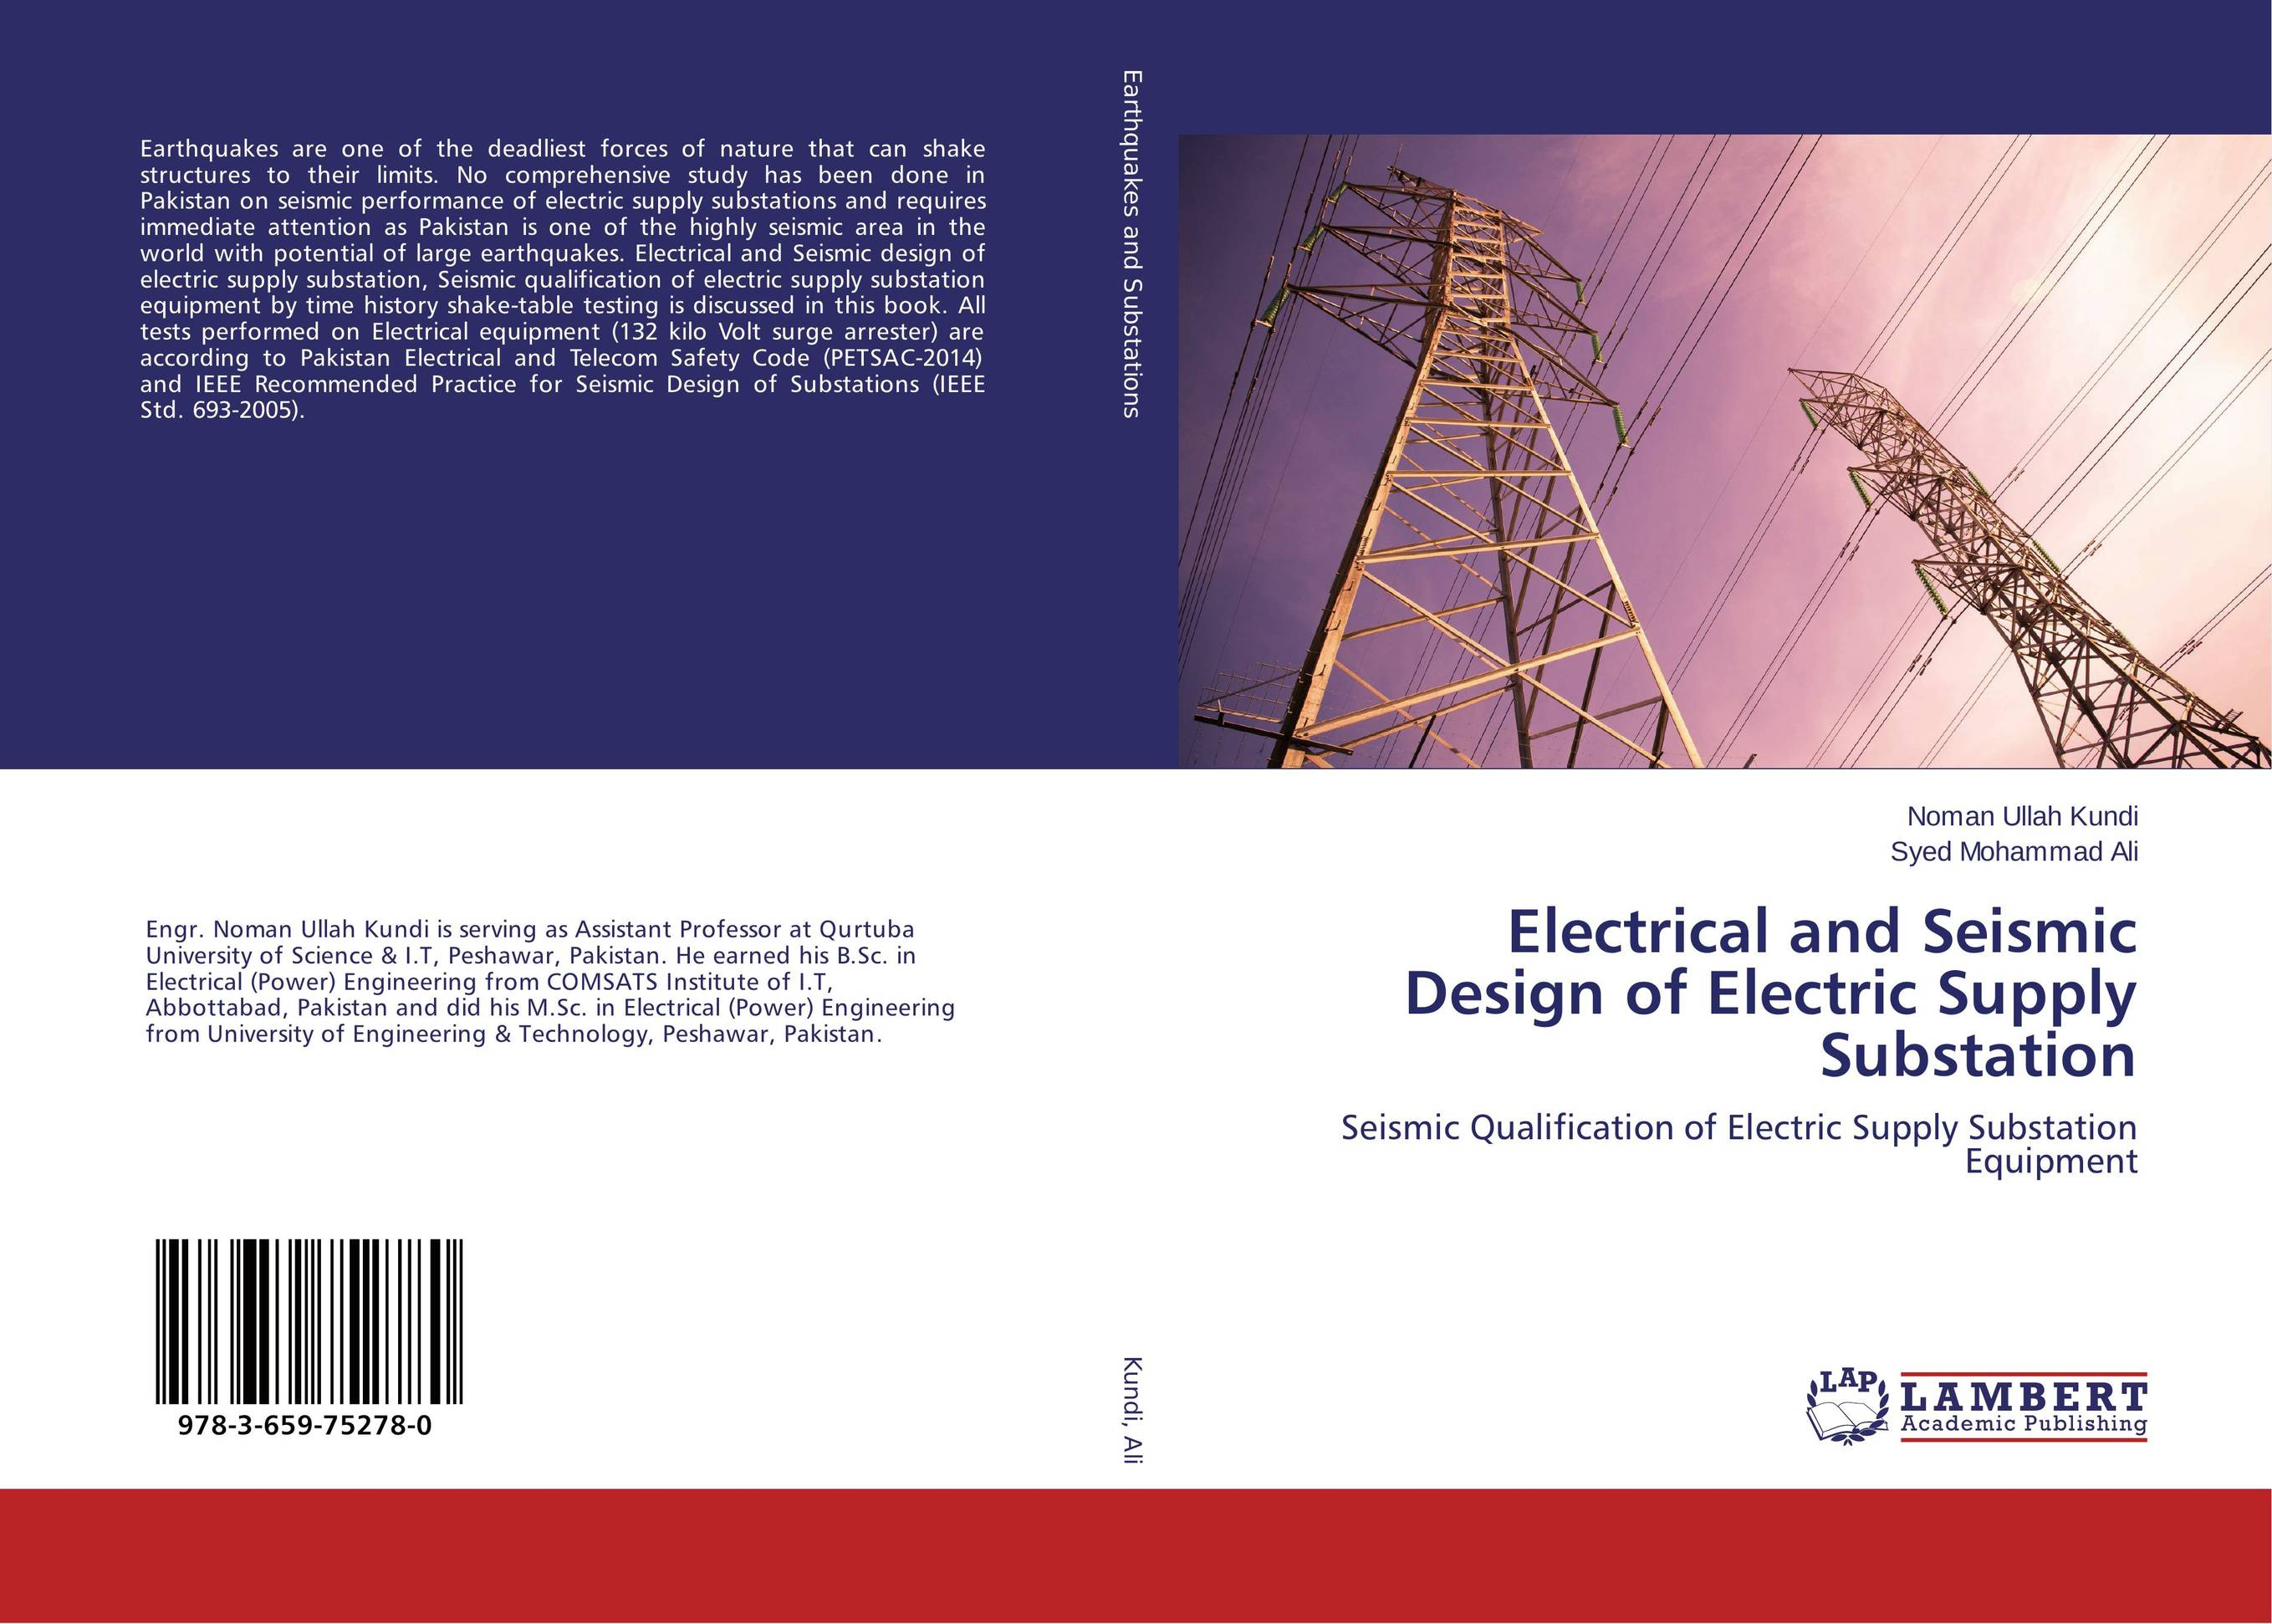 Electrical and Seismic Design of Electric Supply Substation